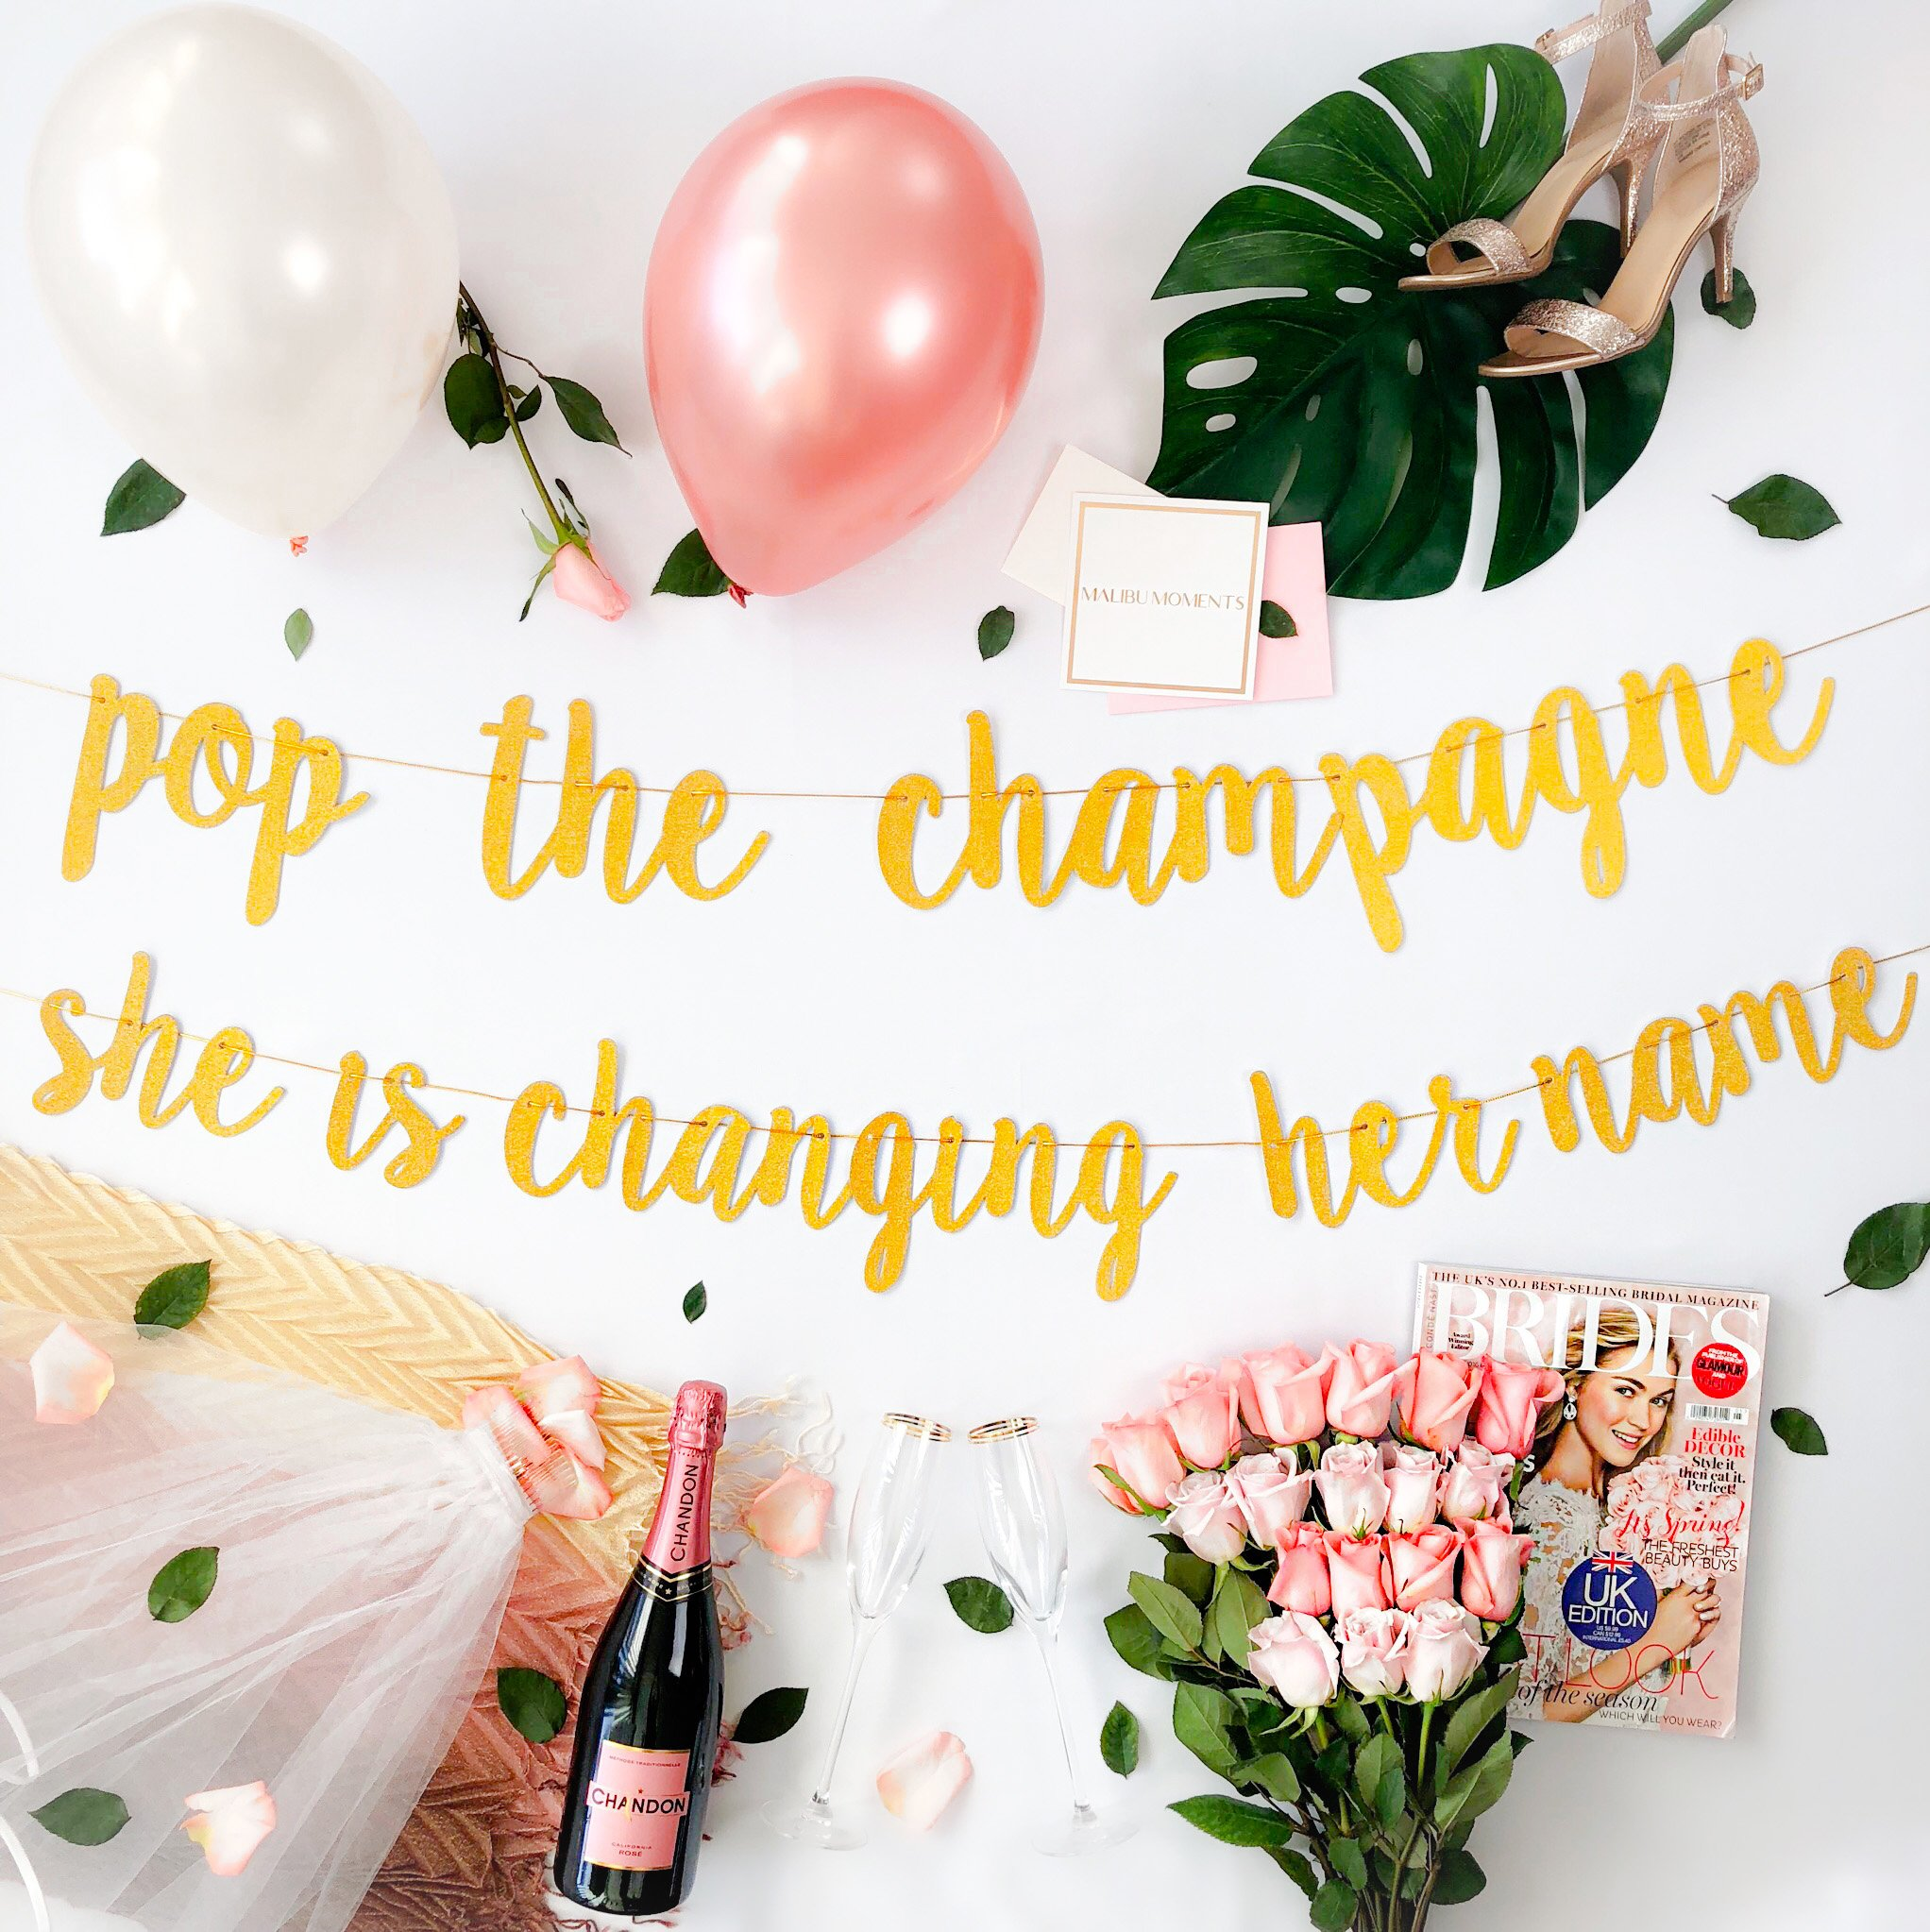 Bachelorette Party Decorations Kit | Bridal Shower Supplies | Bride to Be Sash, Veil, Champagne, Ring Foil Balloon, Rose Gold Balloons, Gold Glitter Banner | Pop The Champagne She Is Changing Her Name by Malibu Moments